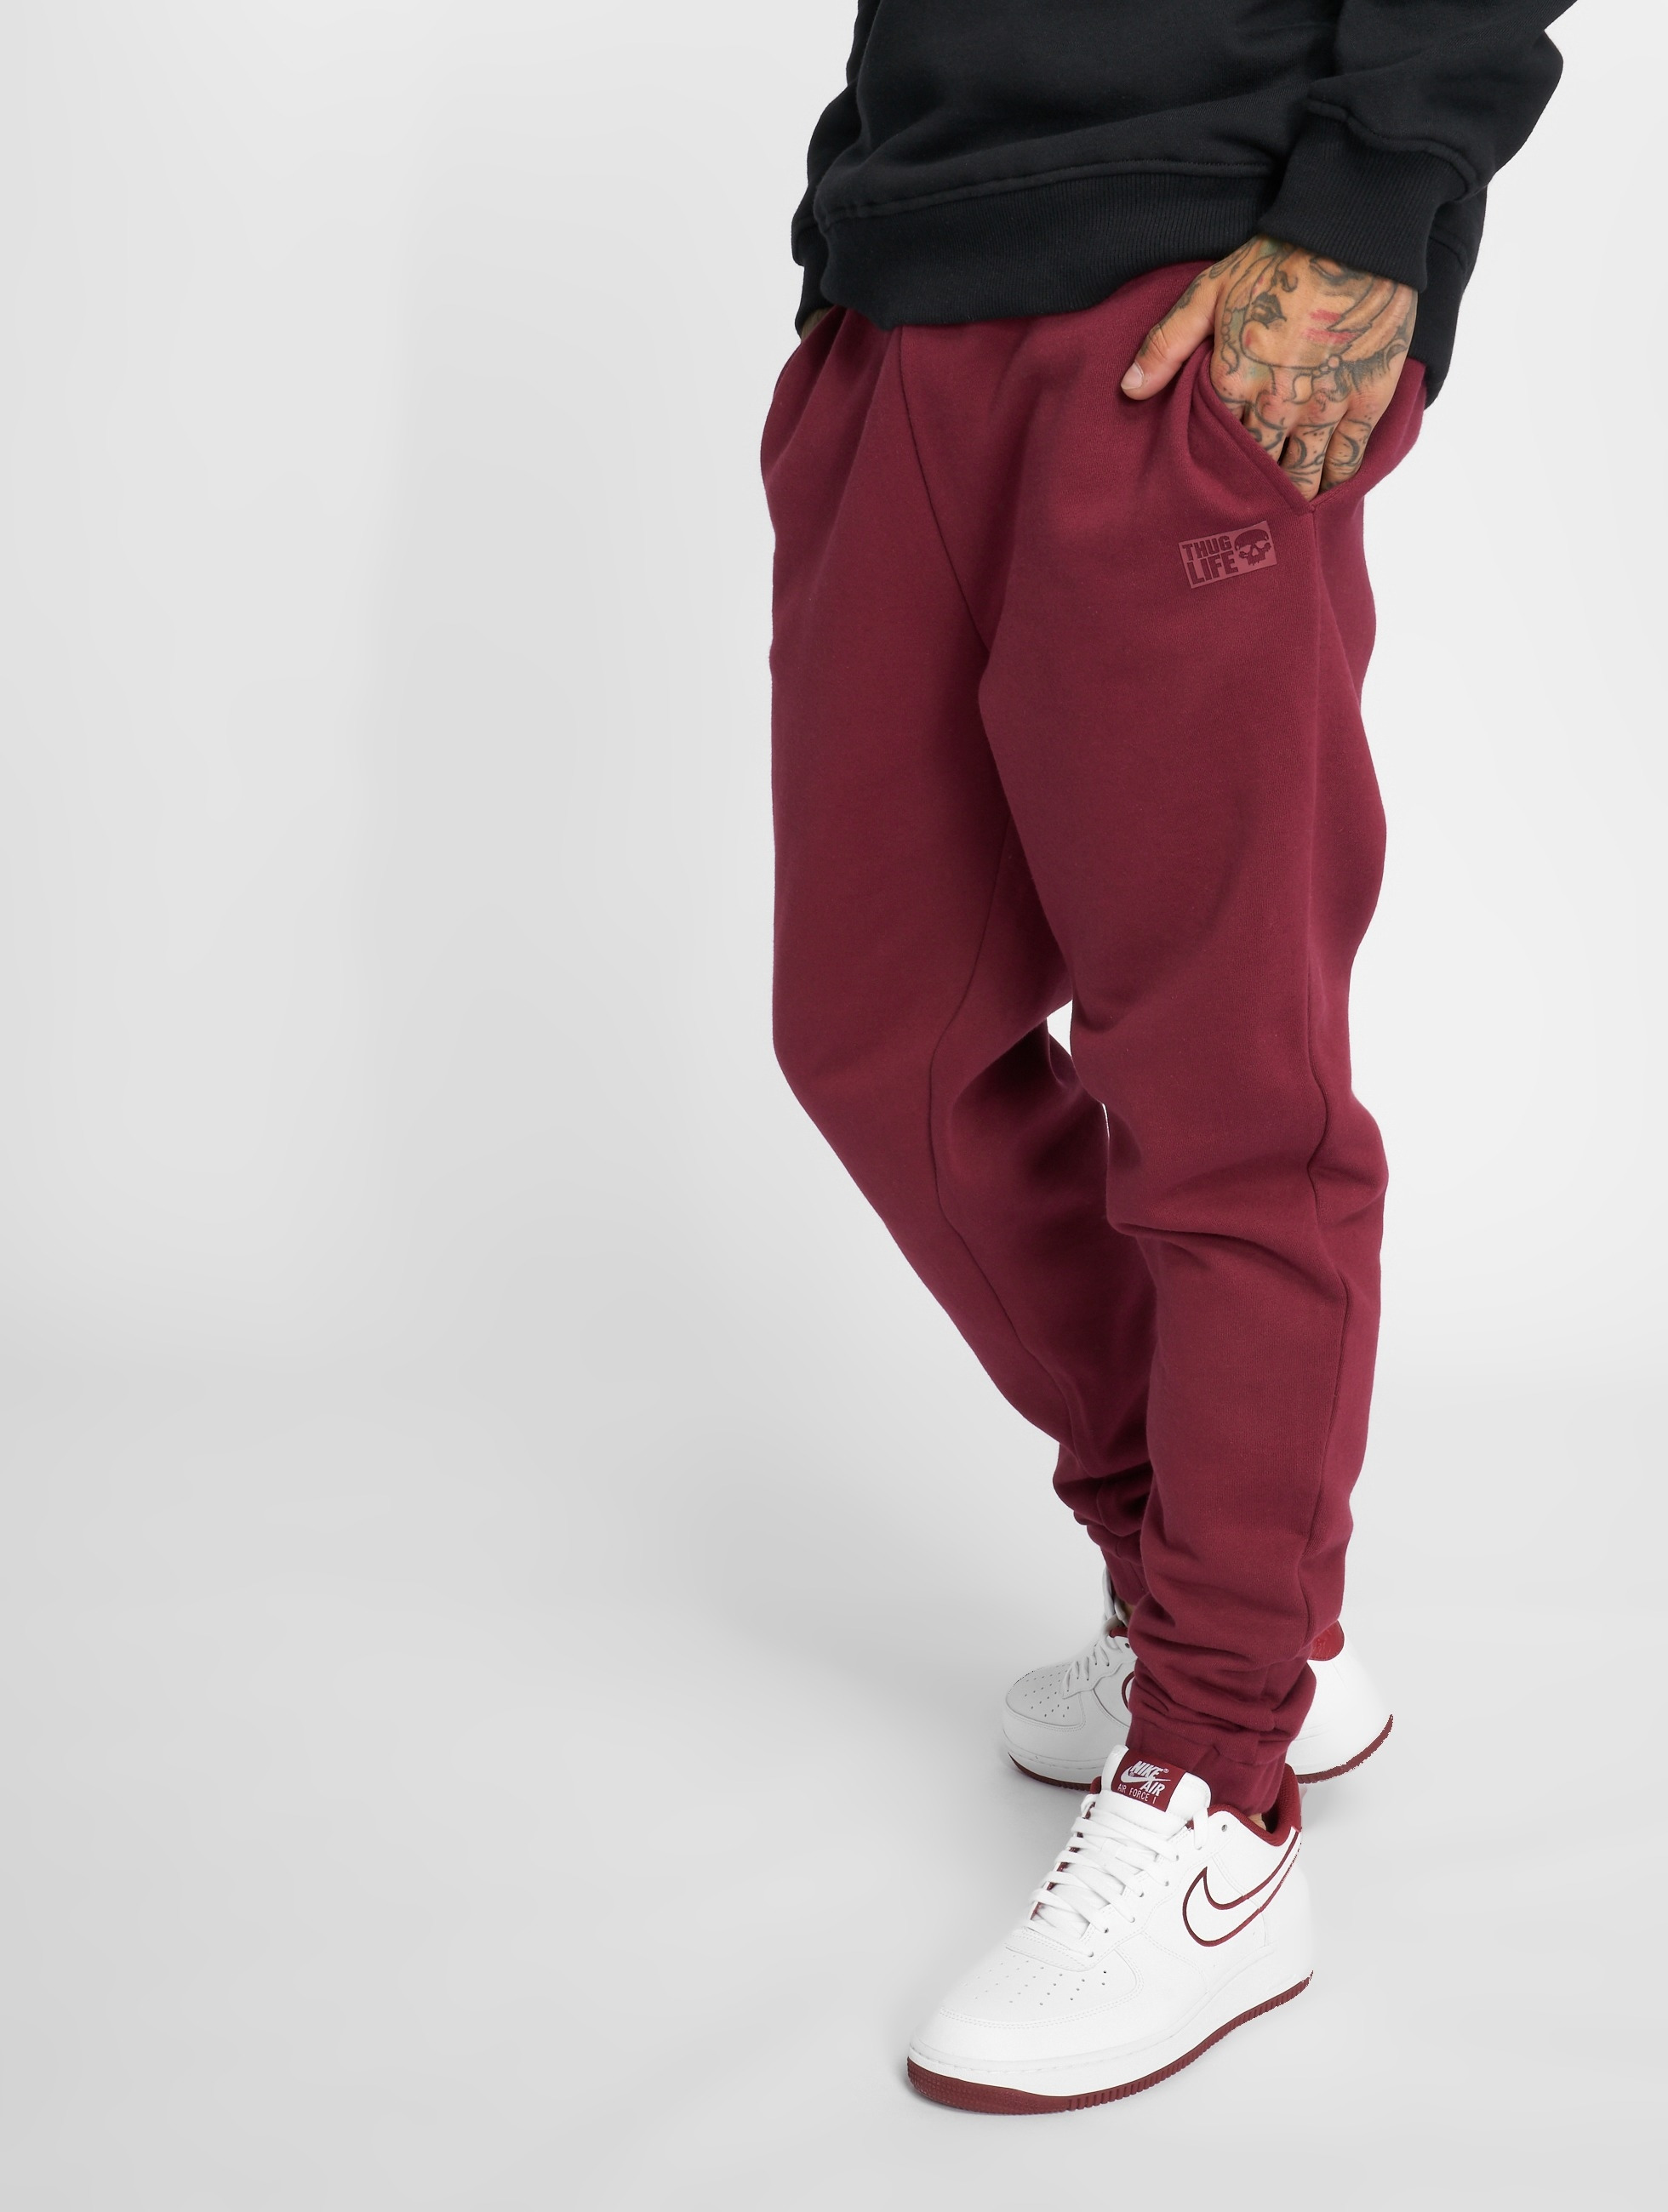 Thug Life / Sweat Pant Avantgarde in red M